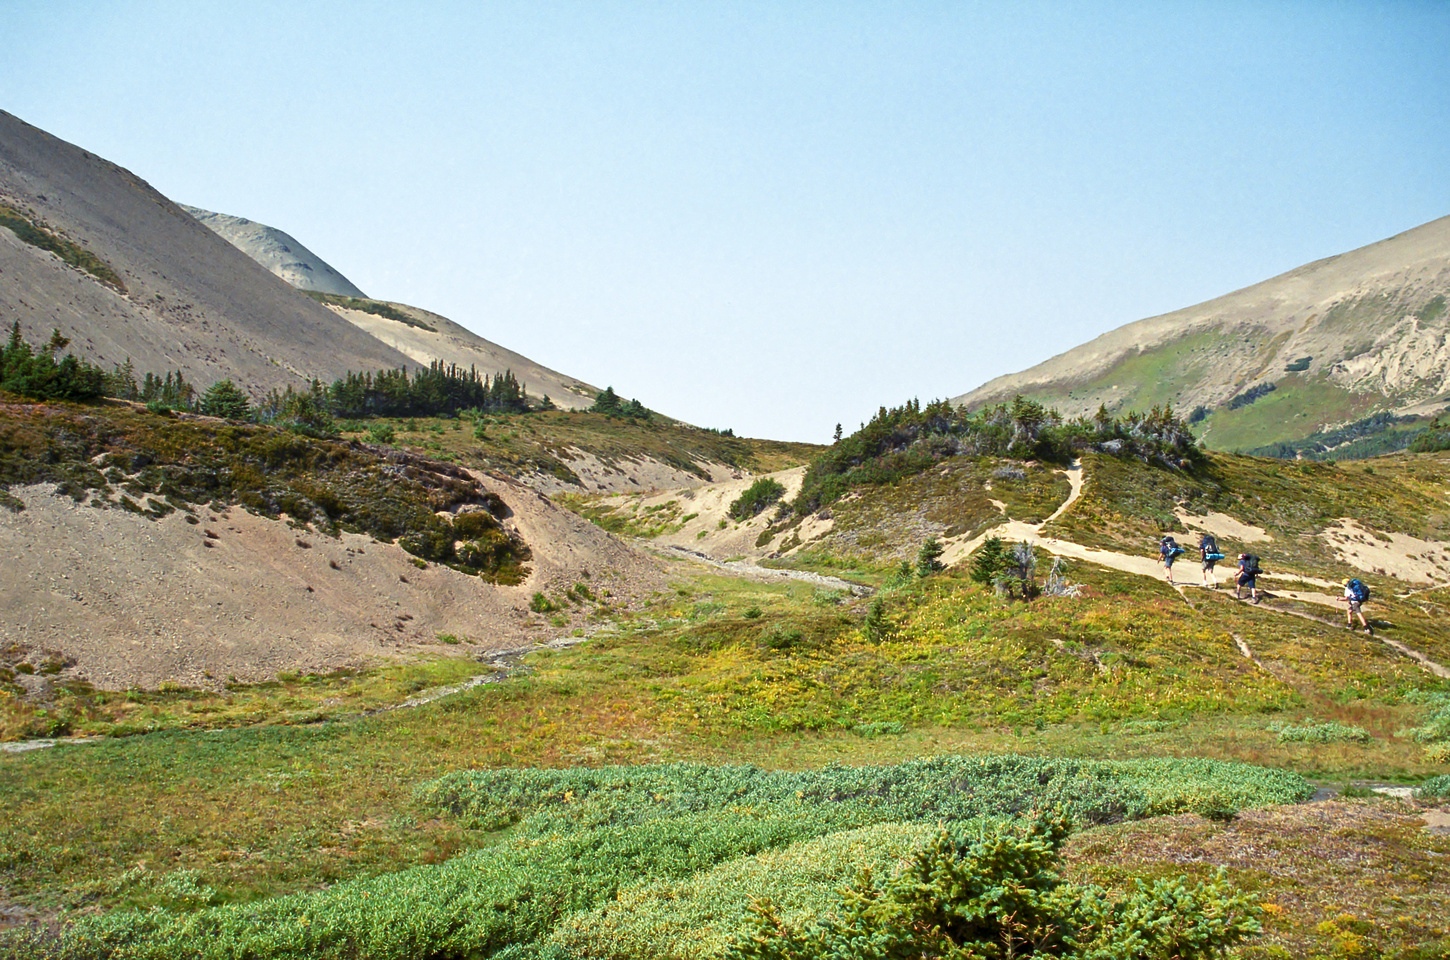 The group keeps hiking, note that we're above tree line now - other than a few pockets of trees.